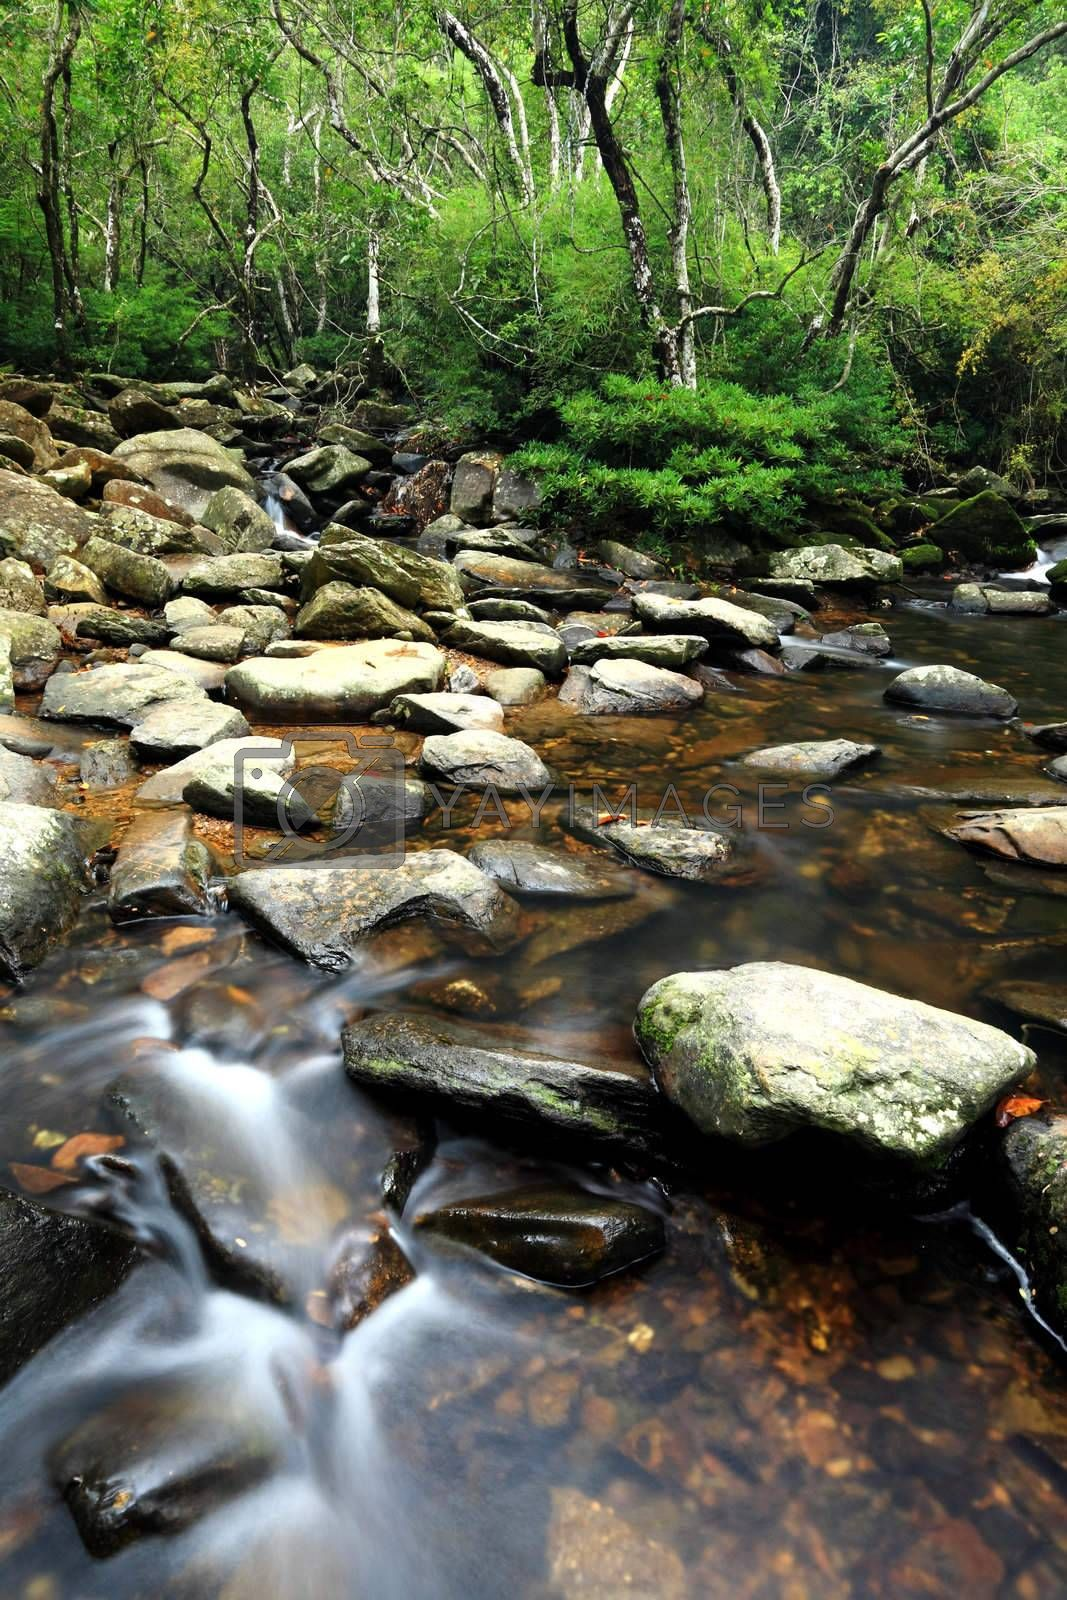 Royalty free image of beautiful water spring in forest by leungchopan